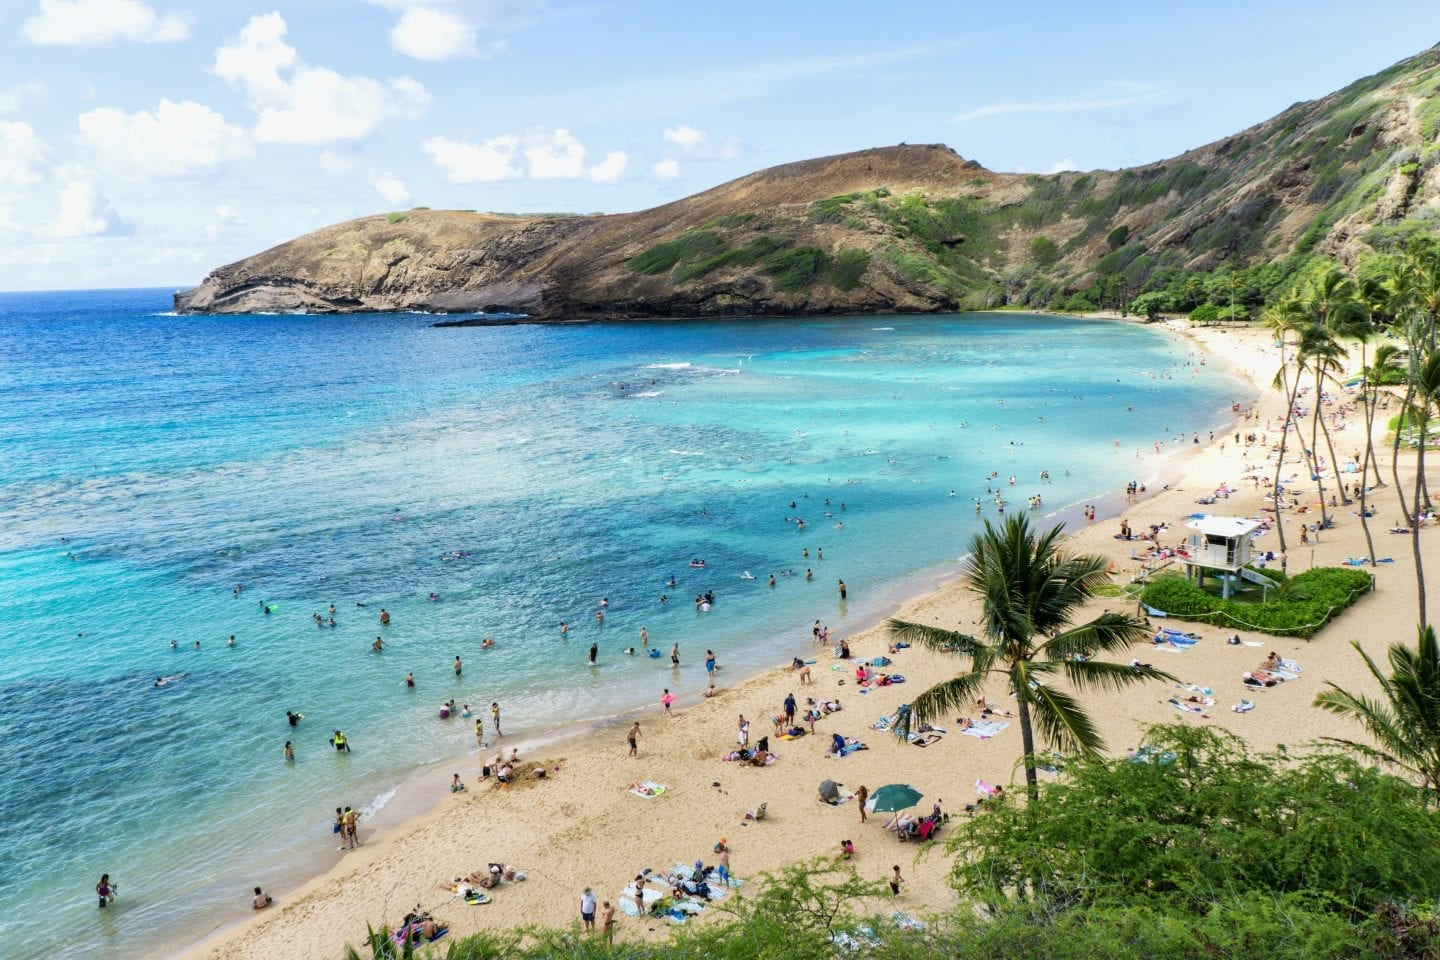 Oahu Beaches - Hanauma Bay